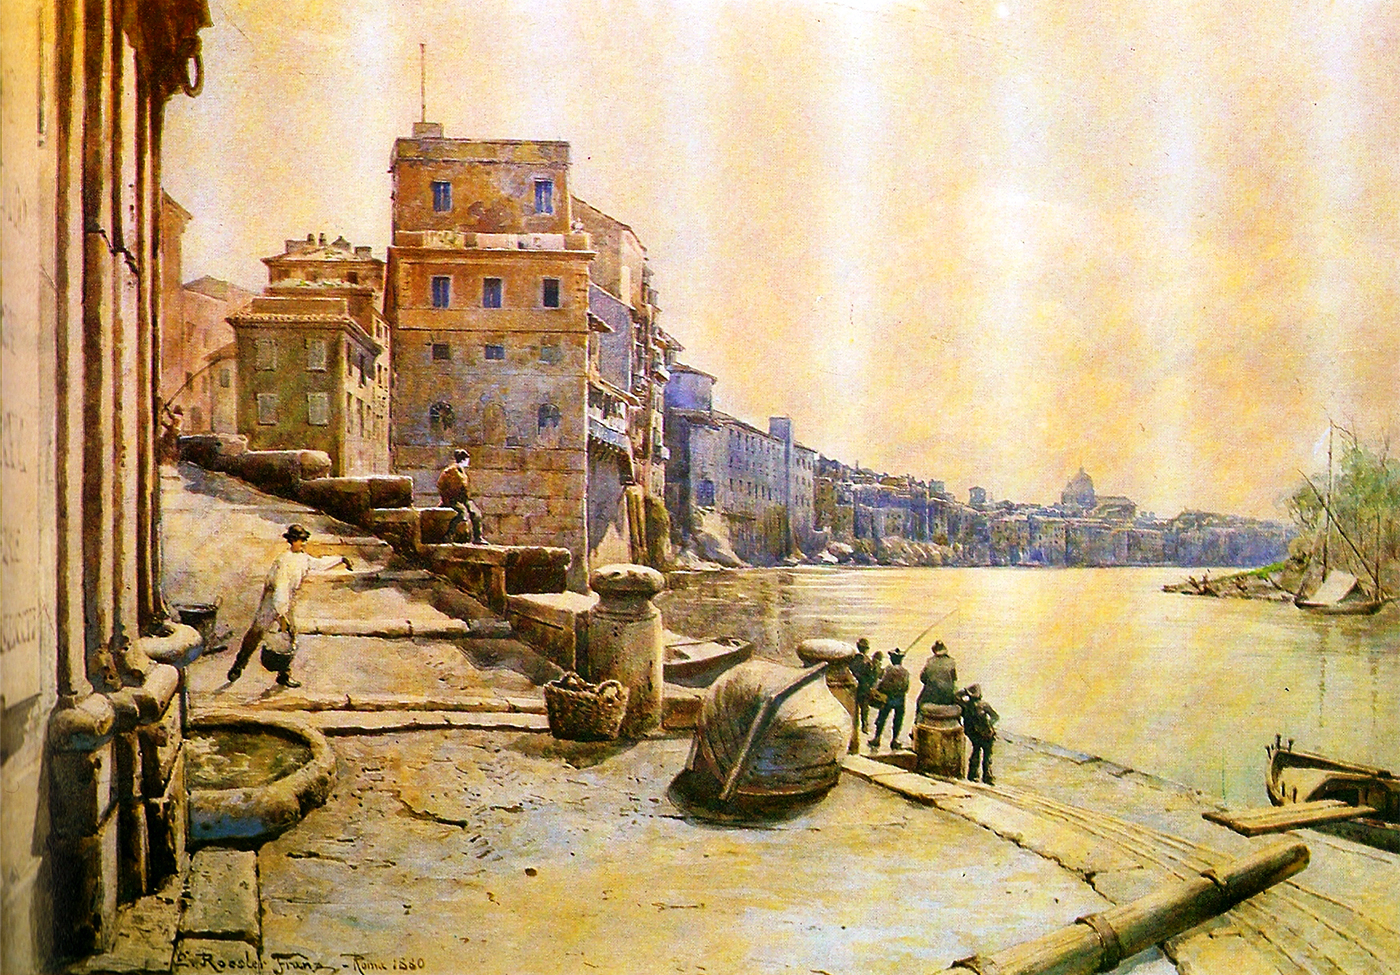 The Porto di Ripetta in a suggestive old illustration